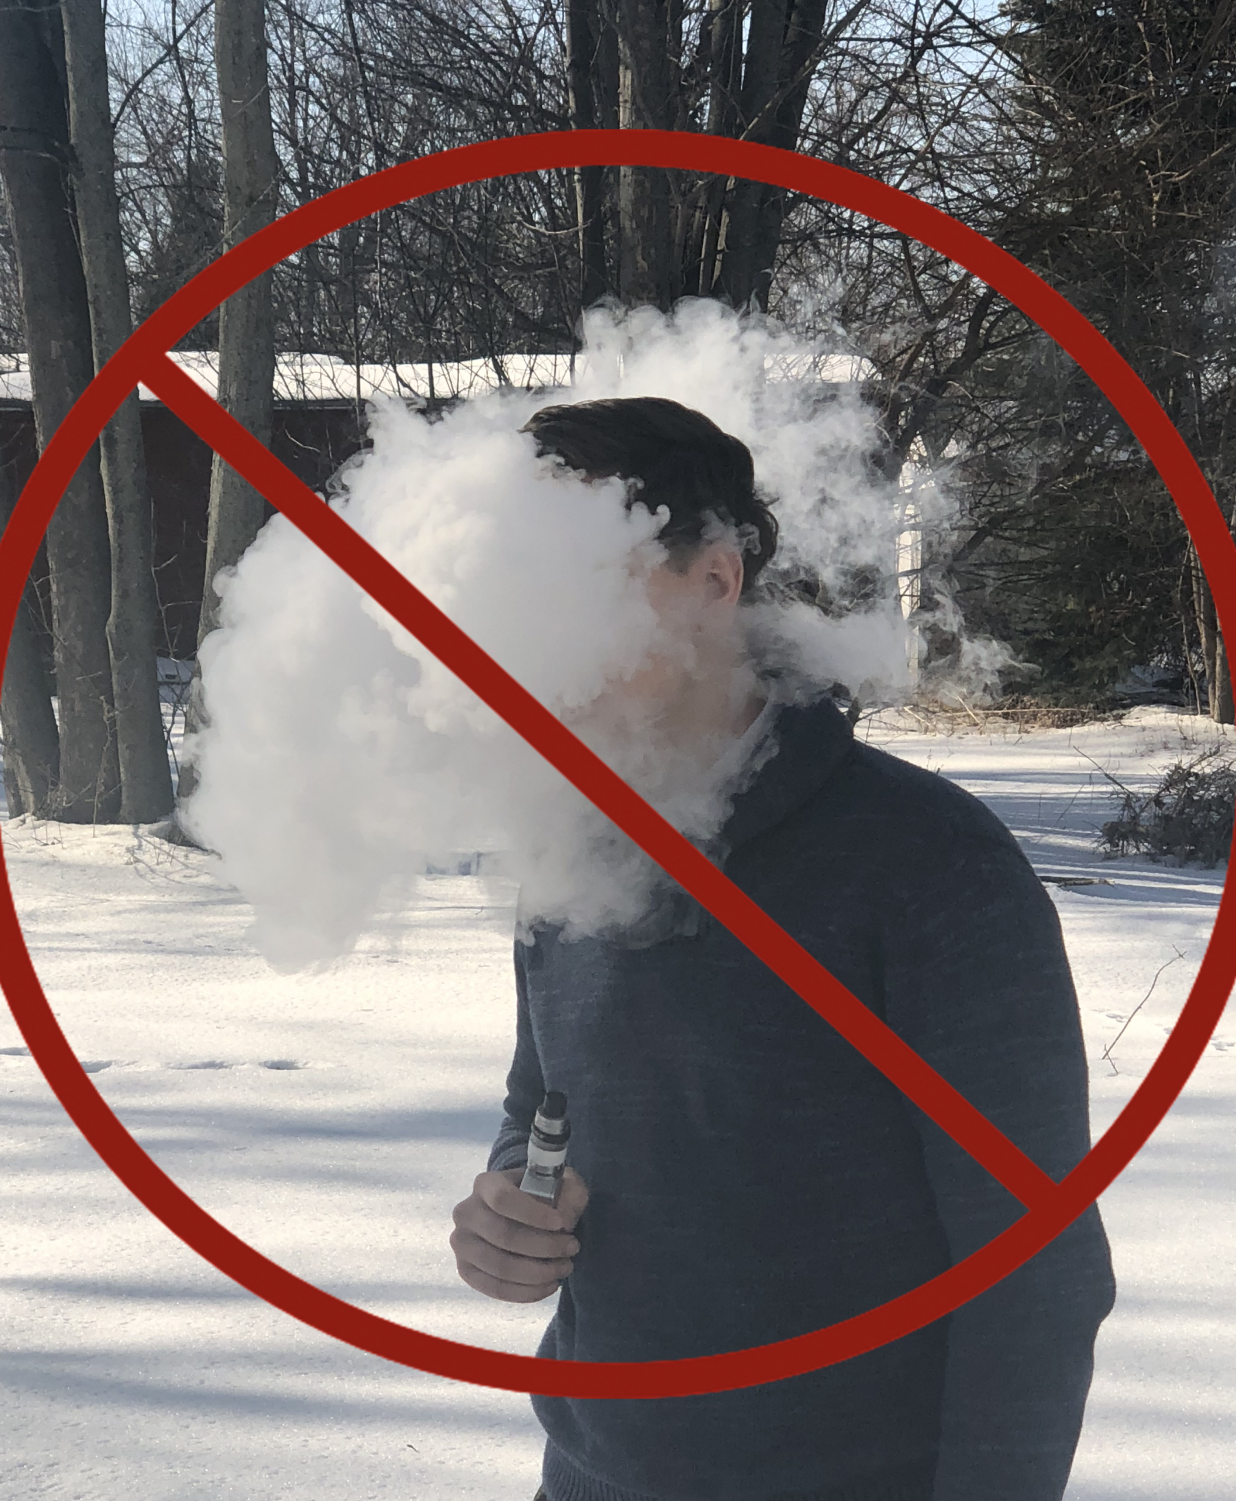 While it is legal for 18+ to smoke, GLHS strongly advises against it. There are absolutely no smoking devices allowed on school grounds.